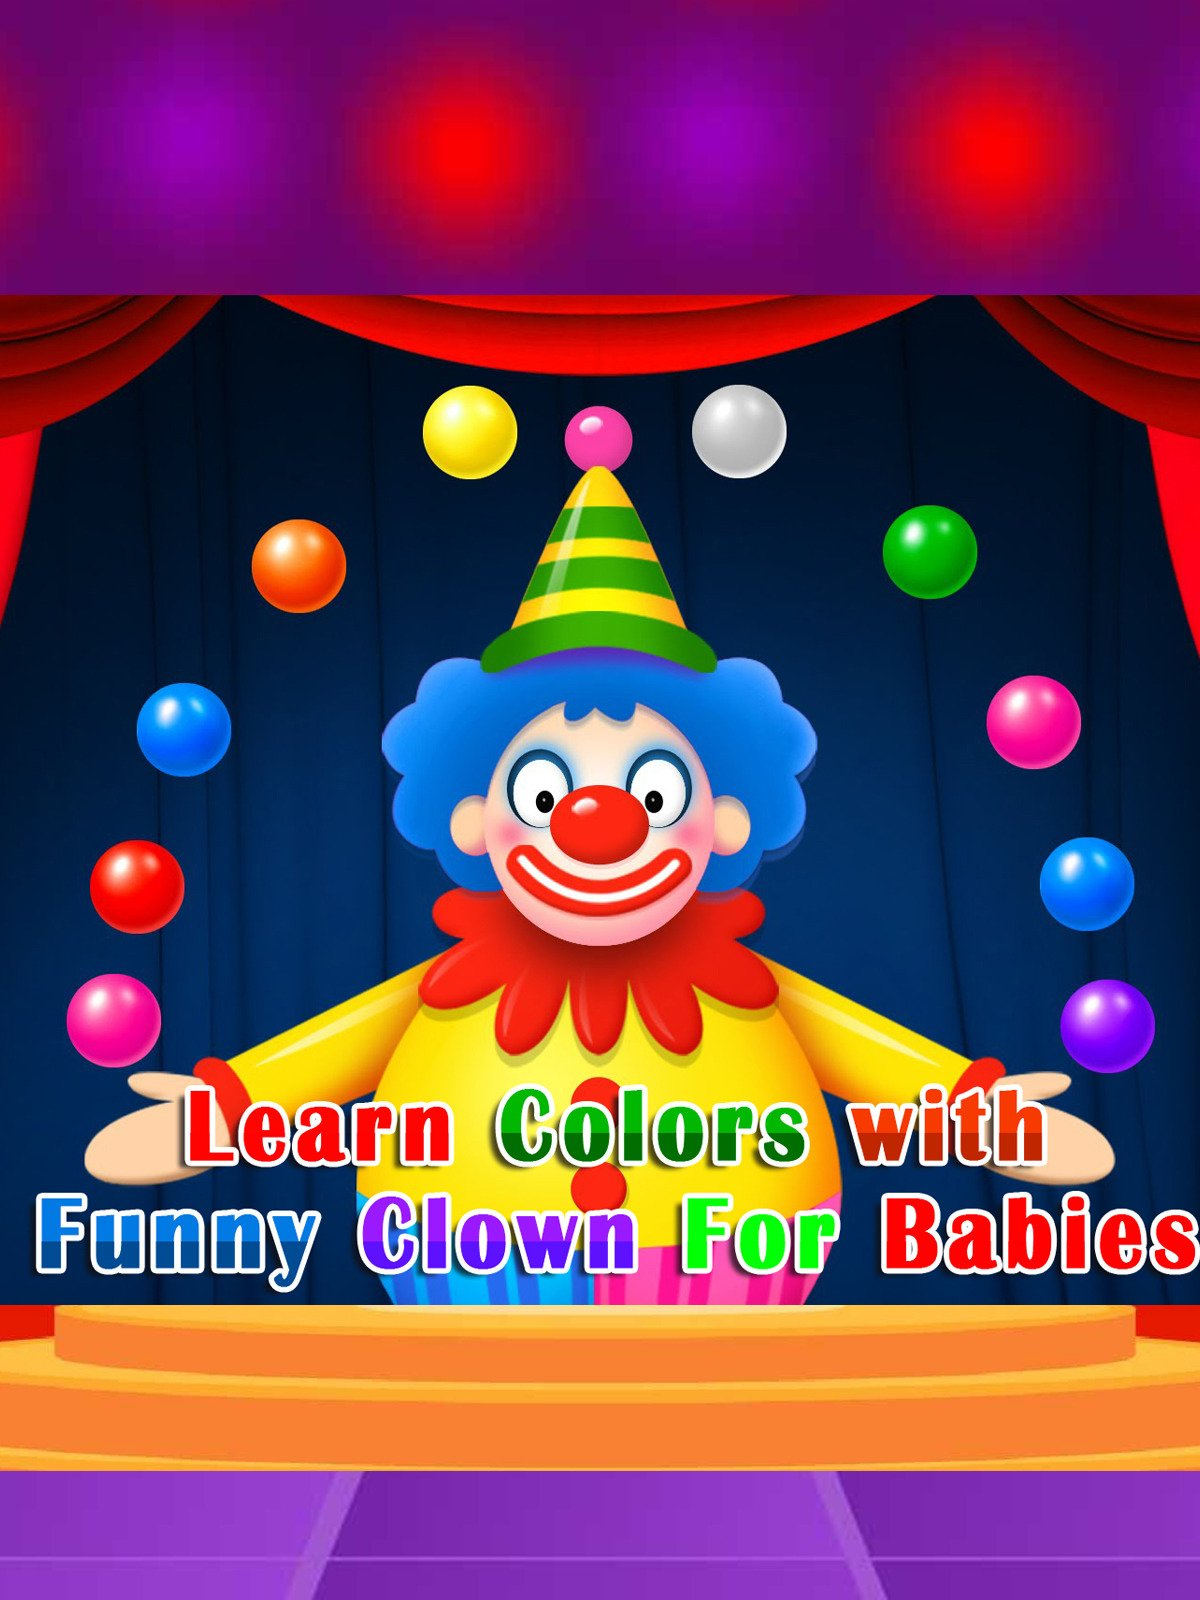 Learn Colors with Funny Clown For Babies